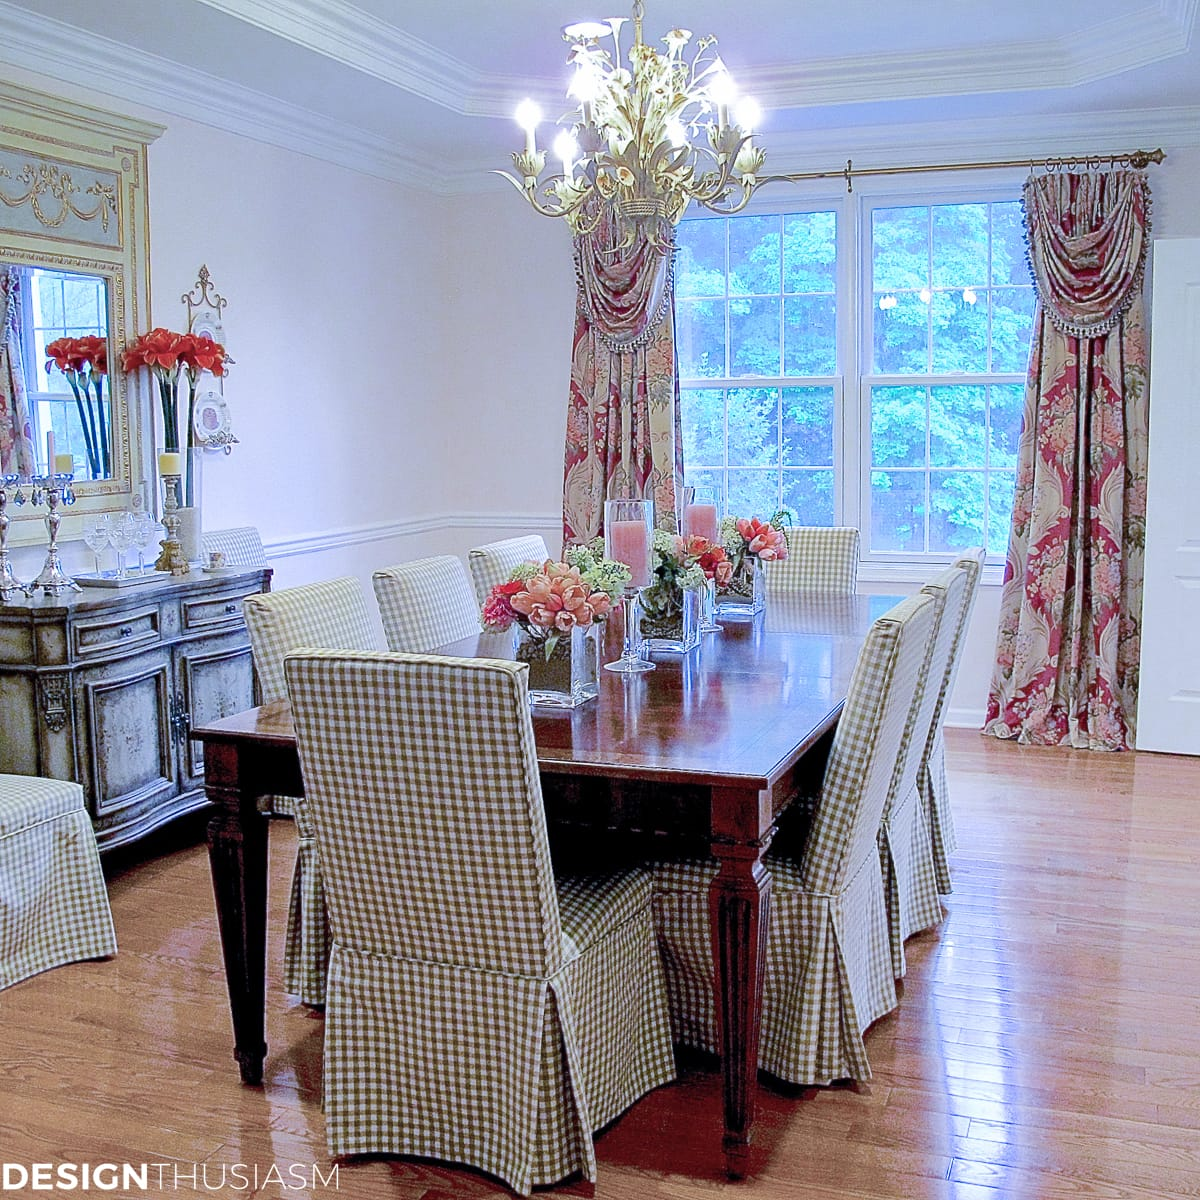 Dining room inspiration   Adding a rosy glow with blush pink and florals - designthusiasm.com